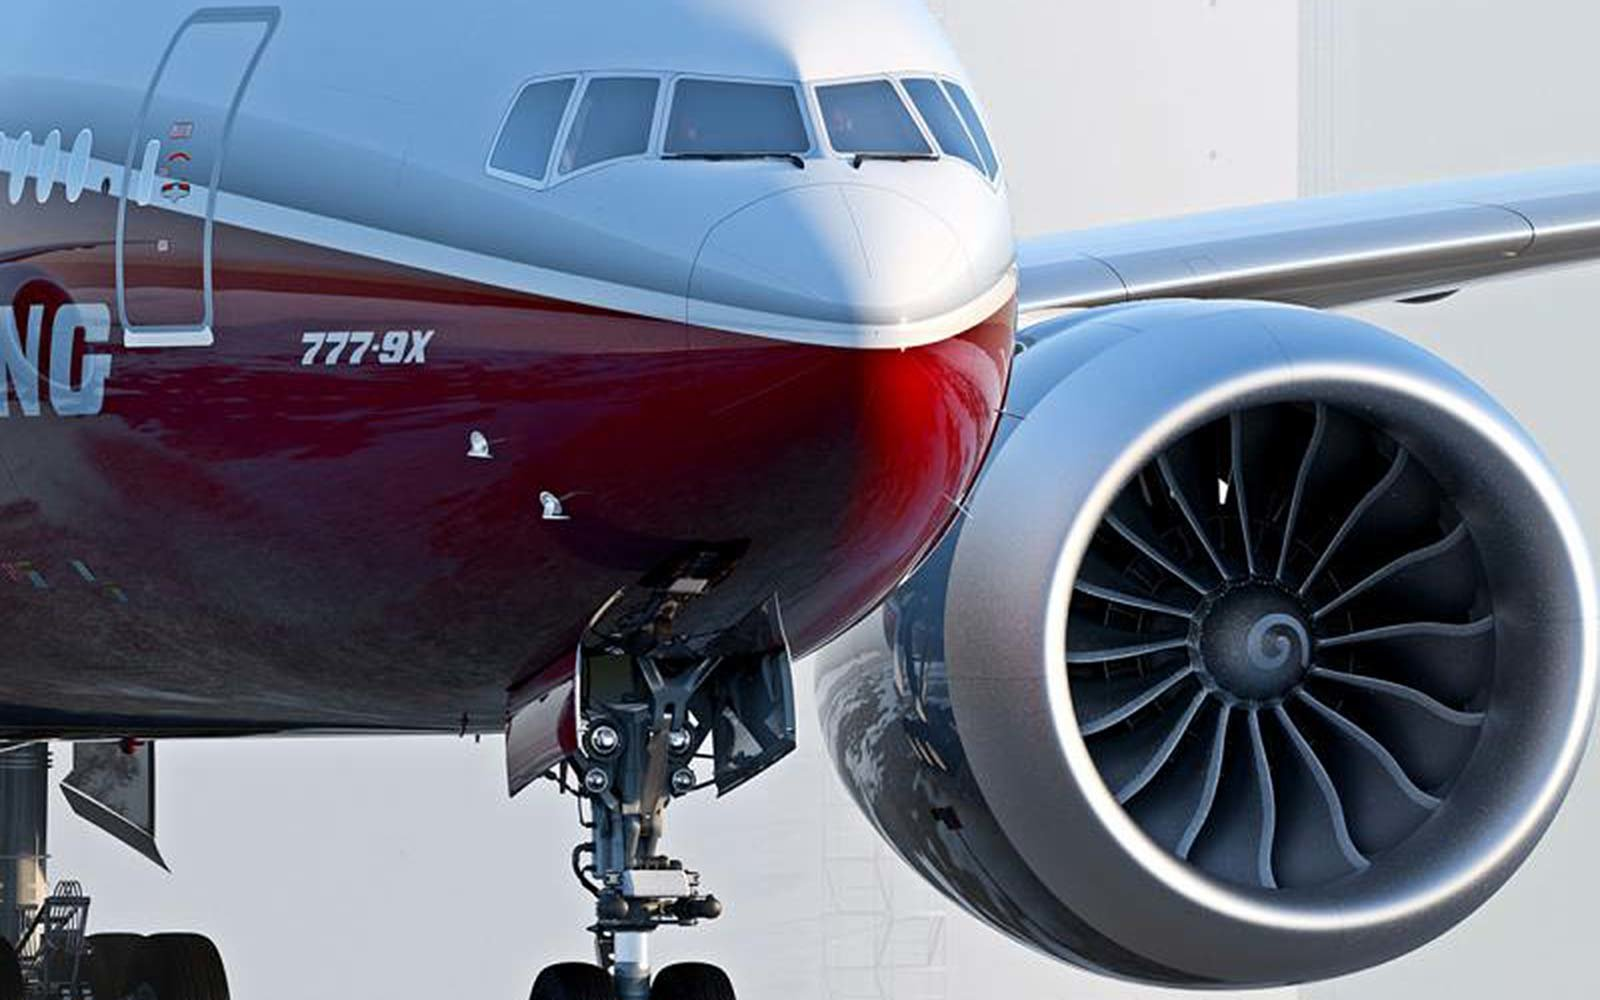 Boeing 777x General Electric GE9X Engine Airplane